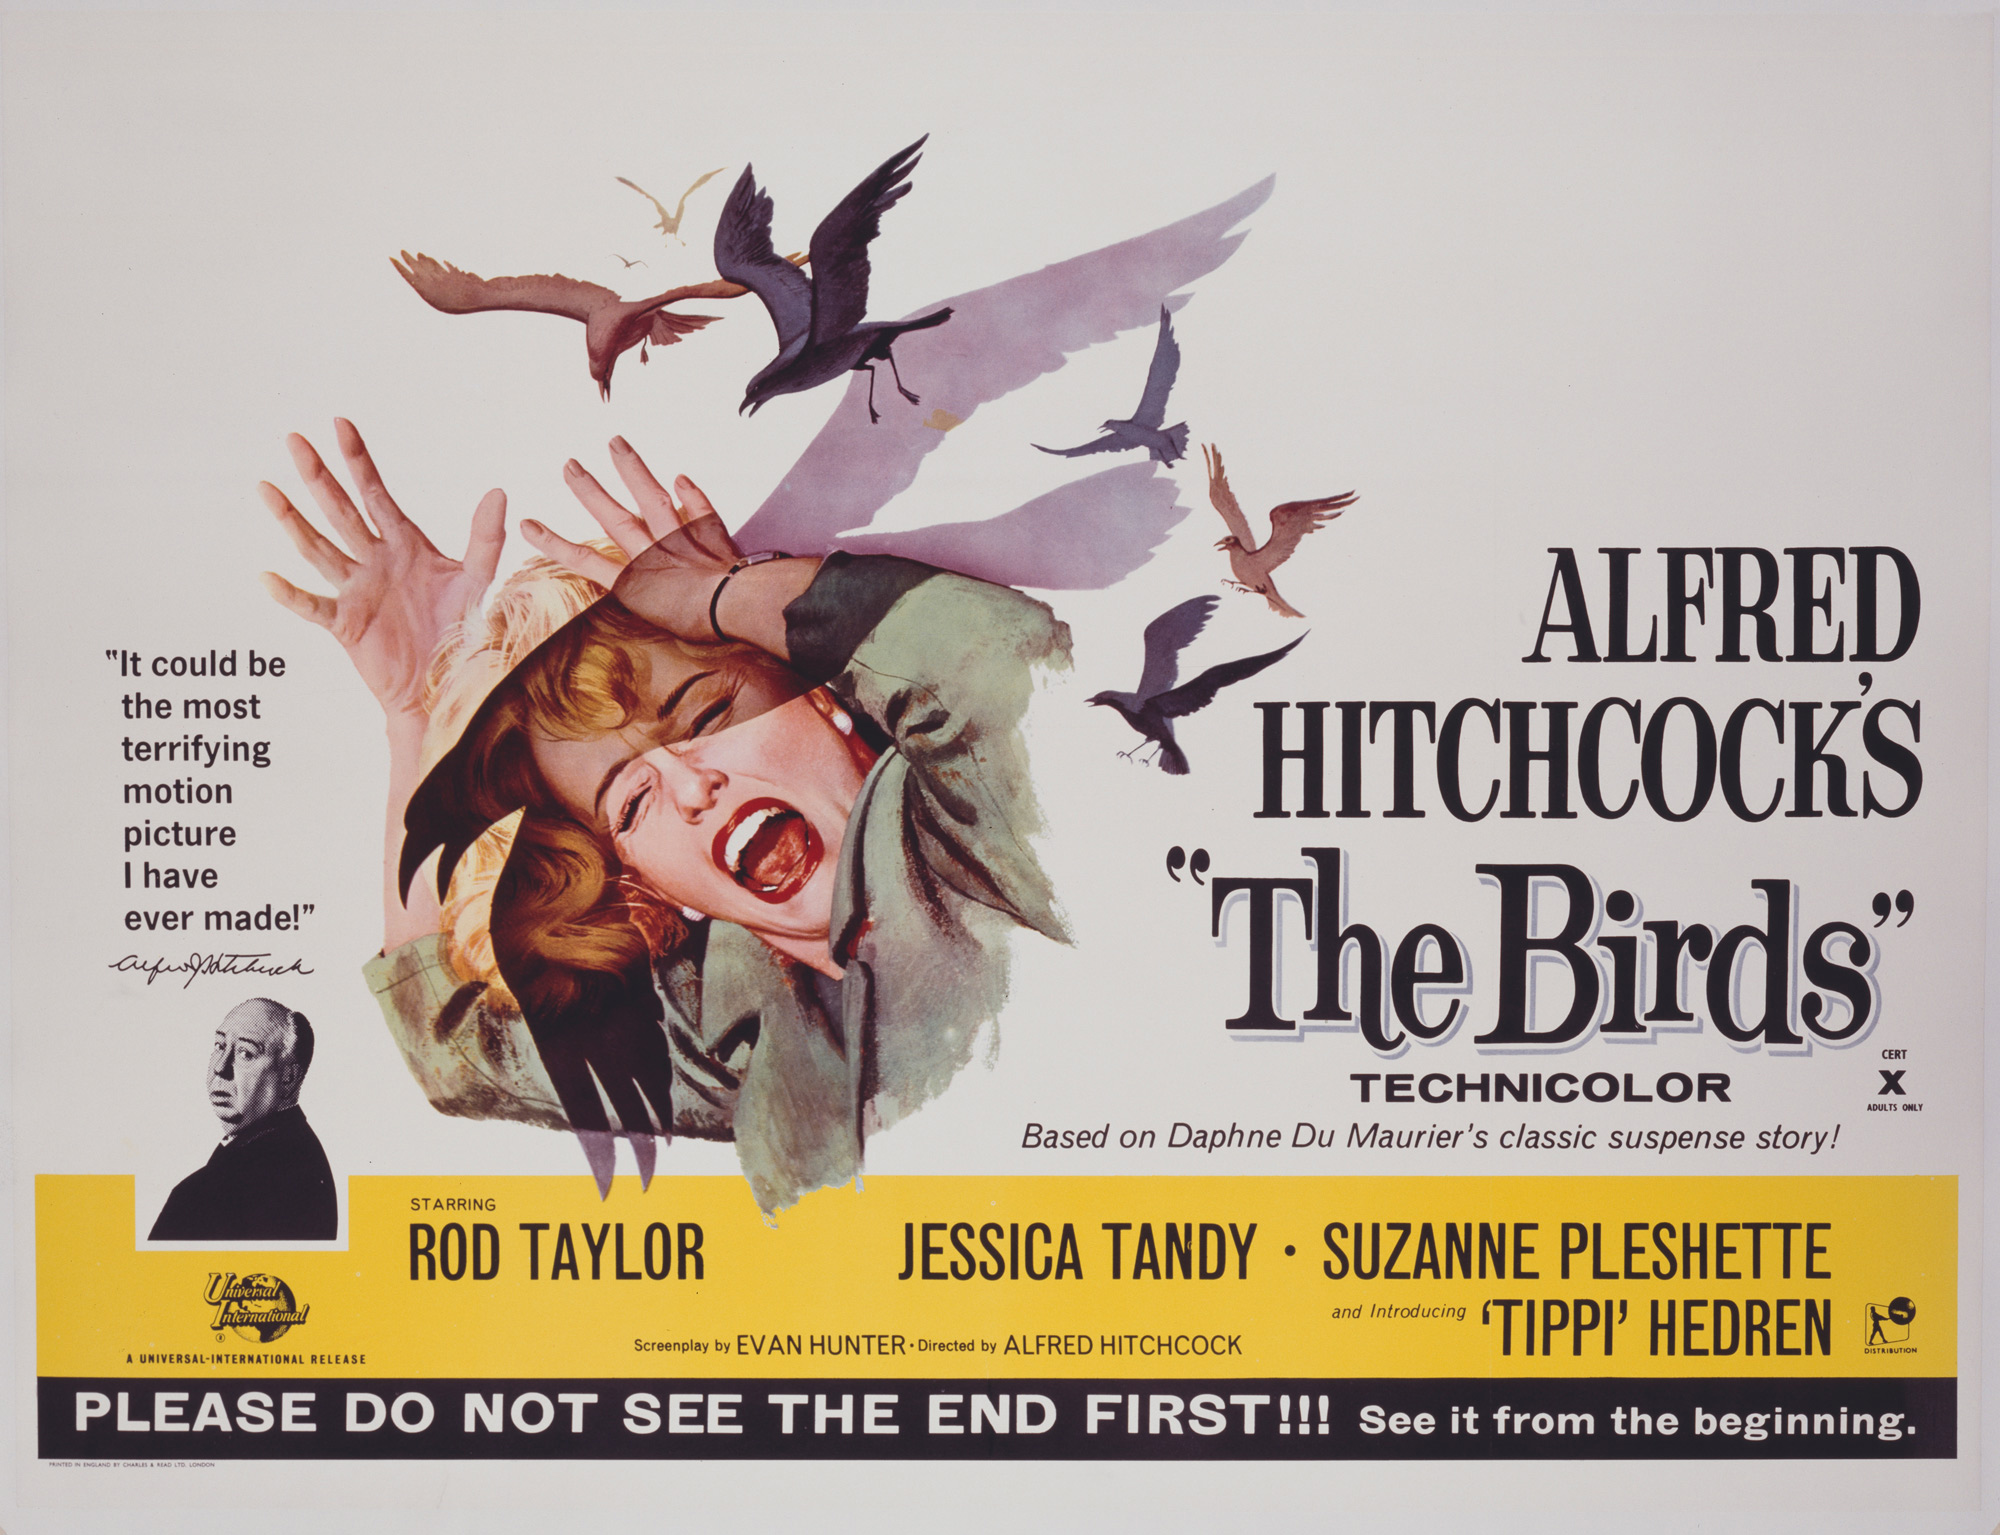 compare and contrast the birds short story and movie